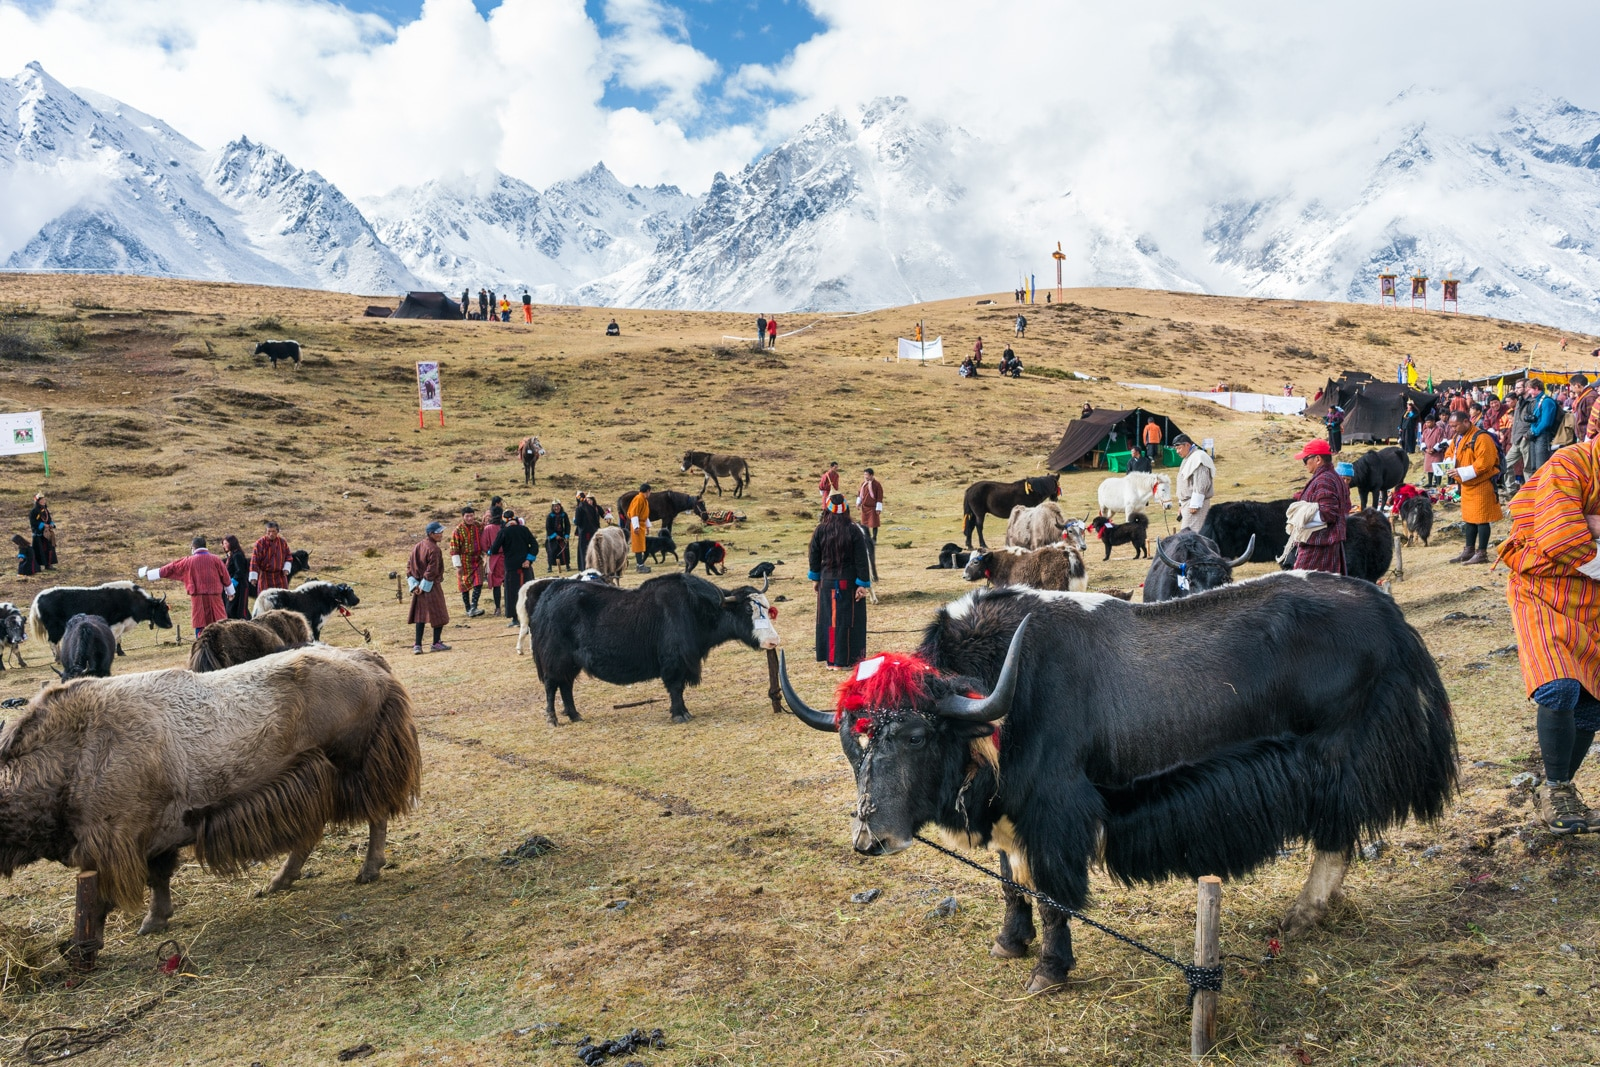 Photos of the Royal Highlander Festival in Bhutan - Yaks and other livestock on display at the festival - Lost With Purpose travel blog